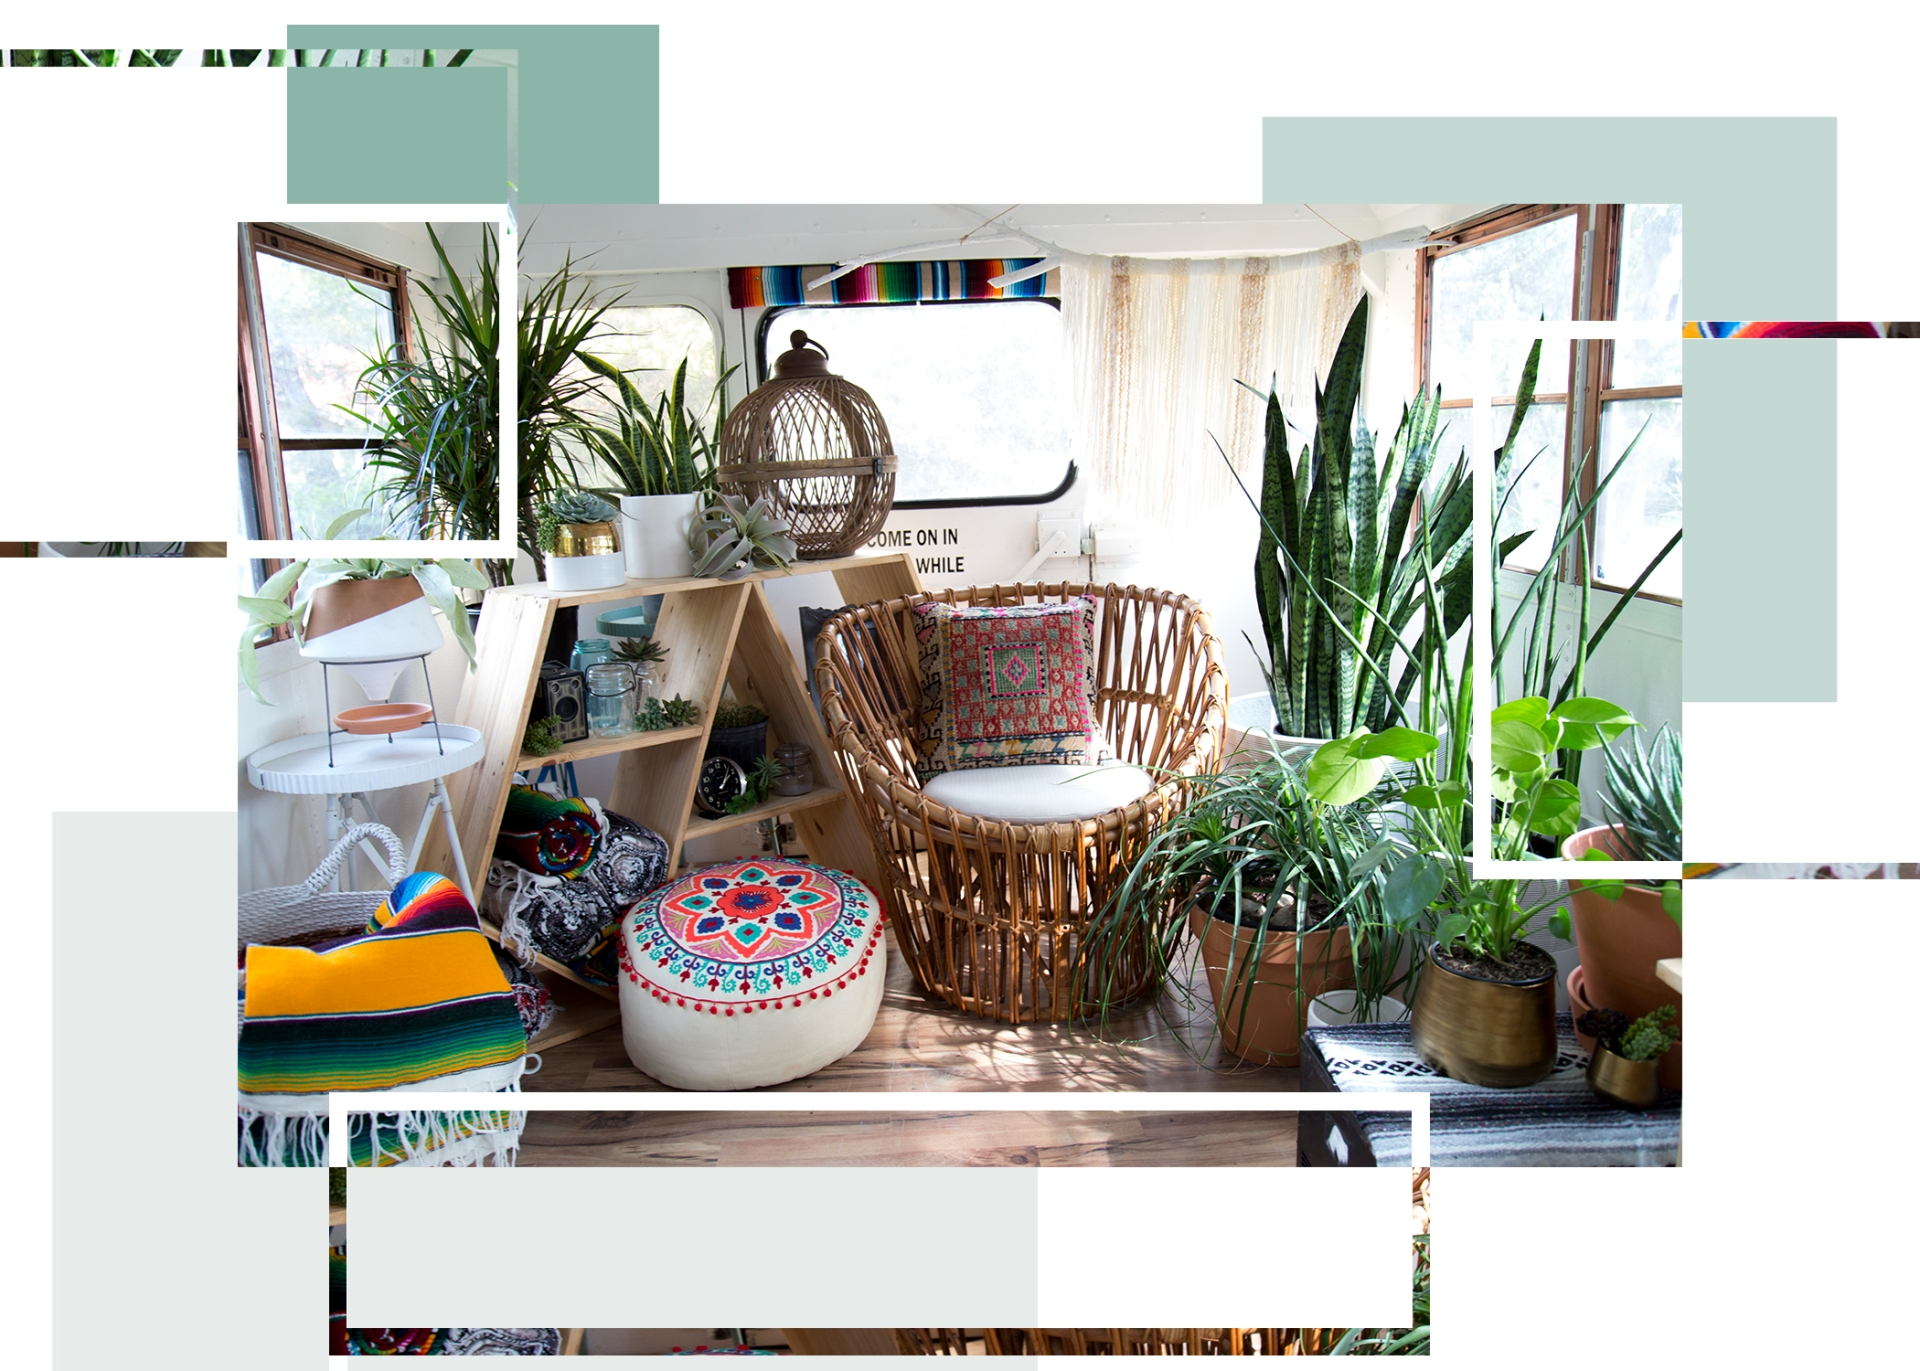 Caitlin Rounds writes about Caitlan Lochridge and her mobile store To the Moon Bus which also can be rented out as a party and event space featuring her adorable bohemian products from local vendors